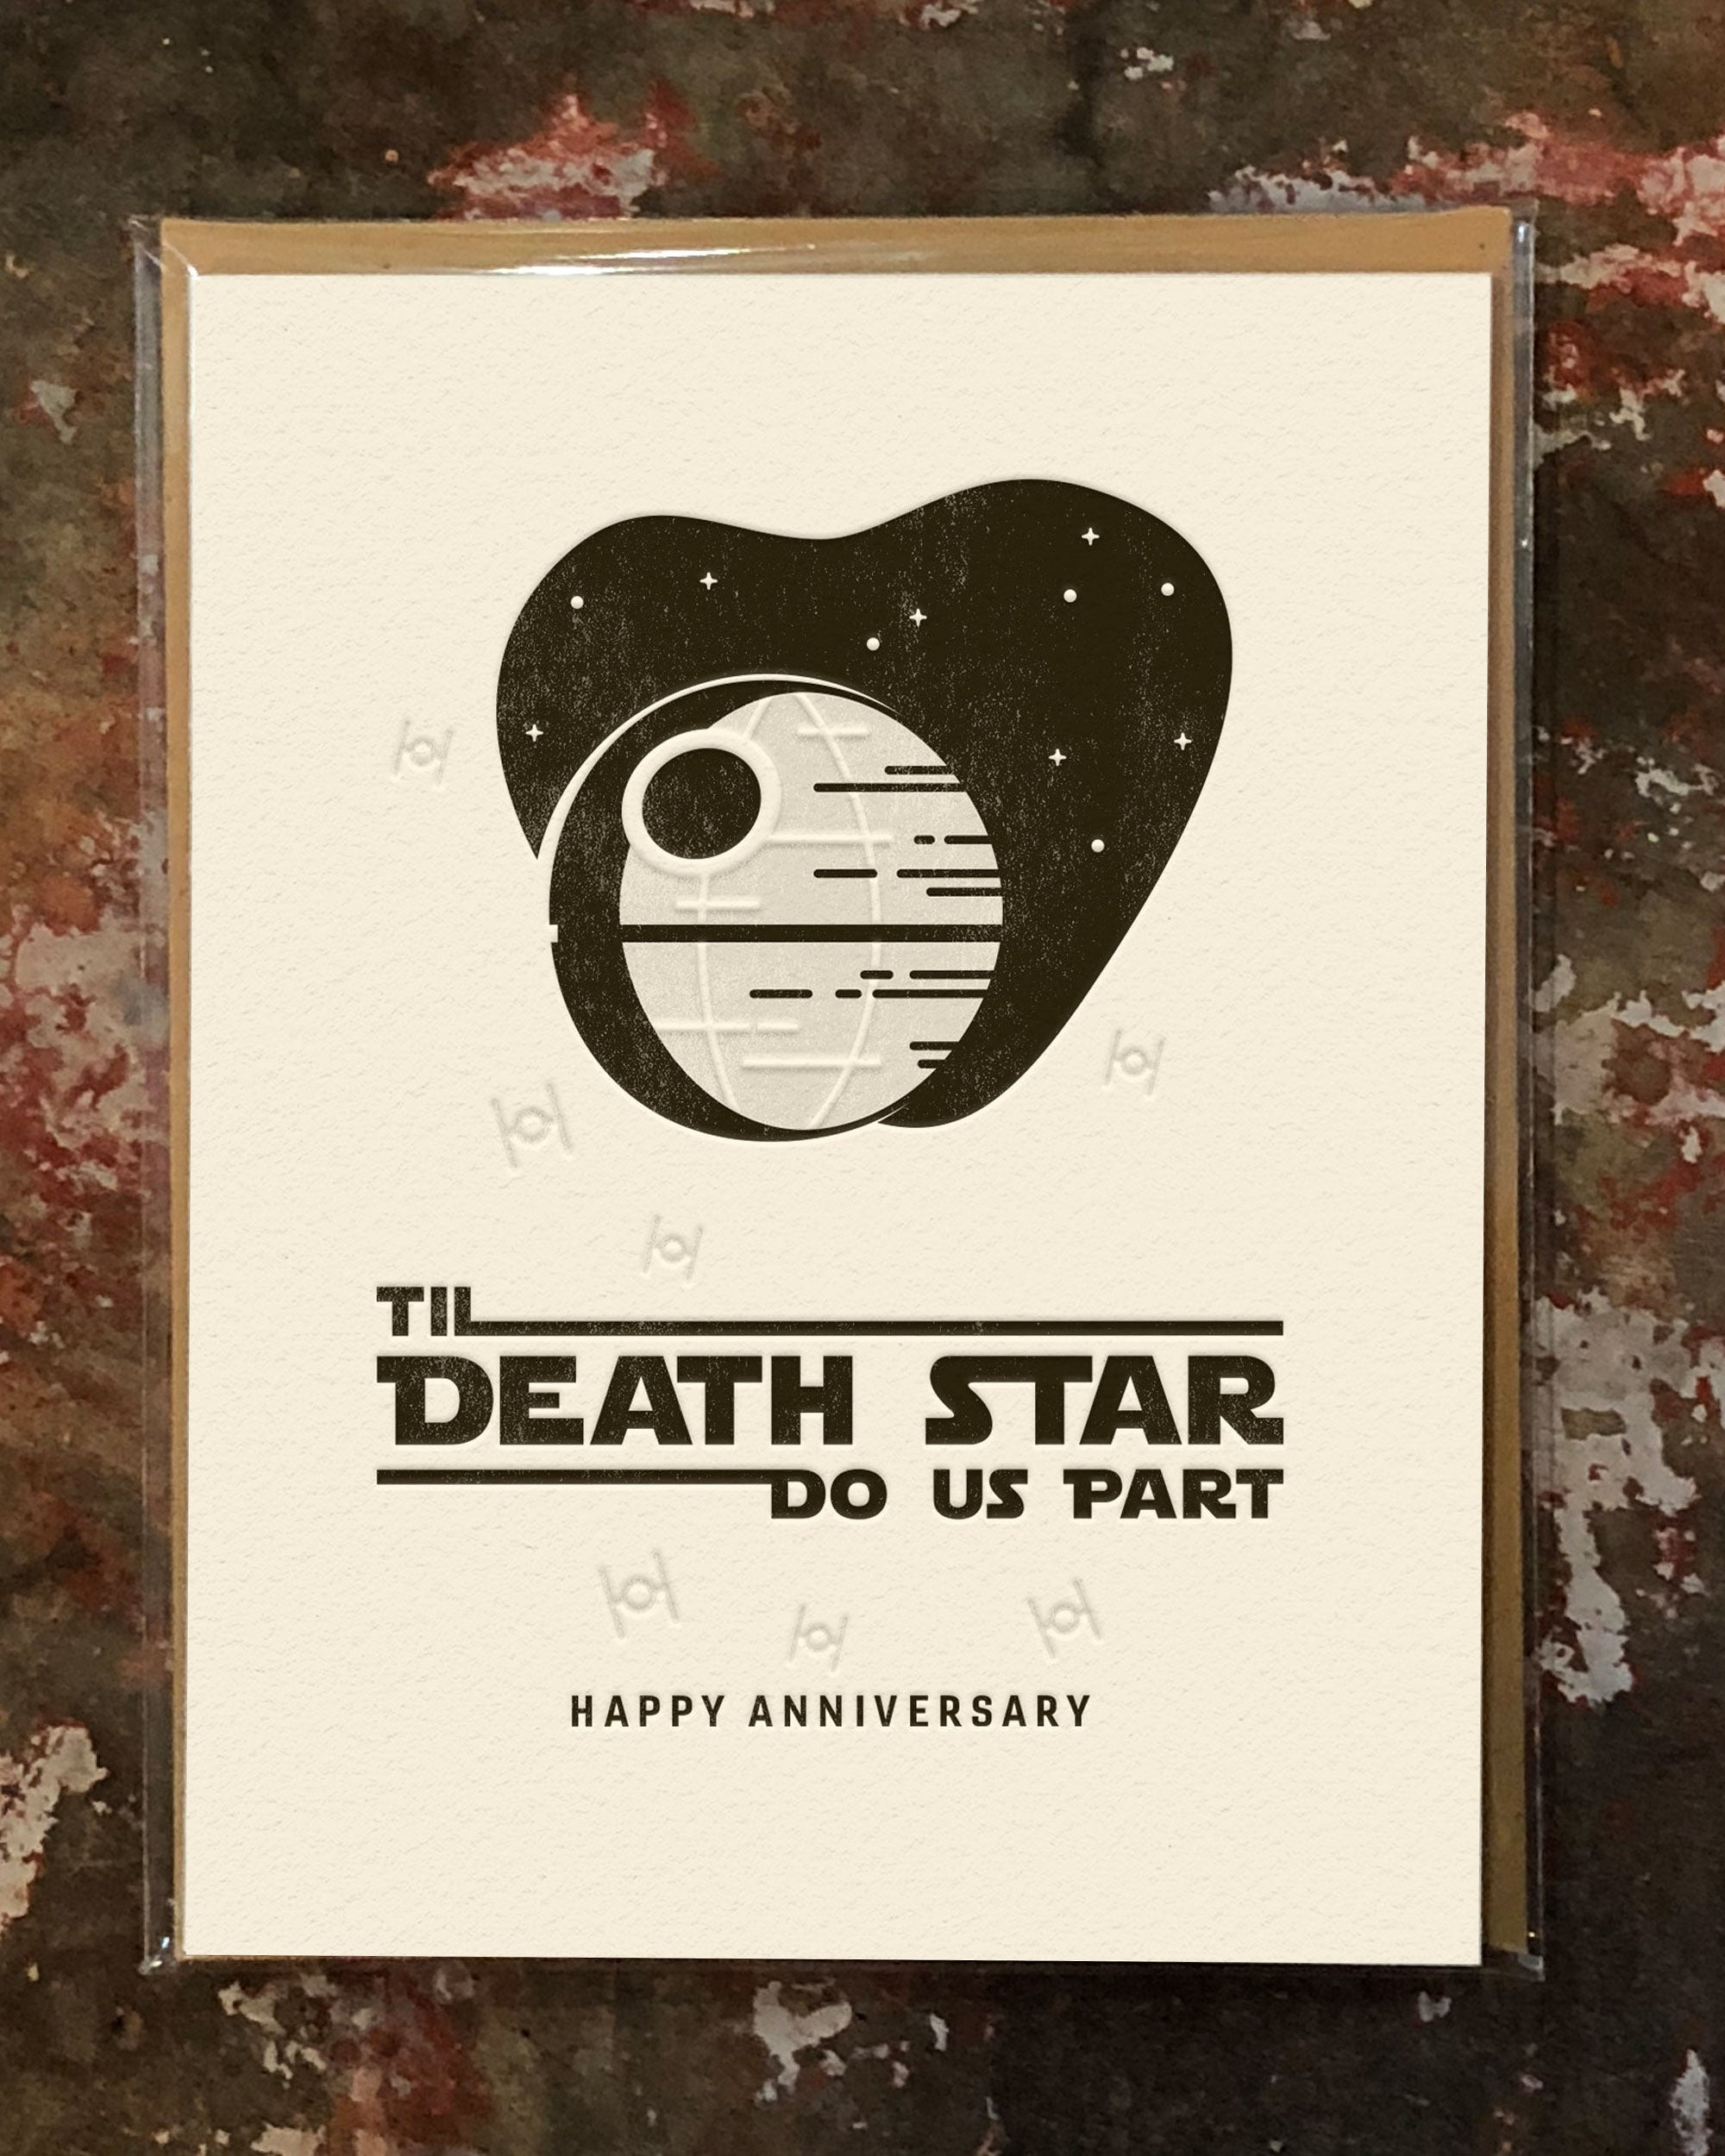 Til Death Star Do Us Part Greeting Card